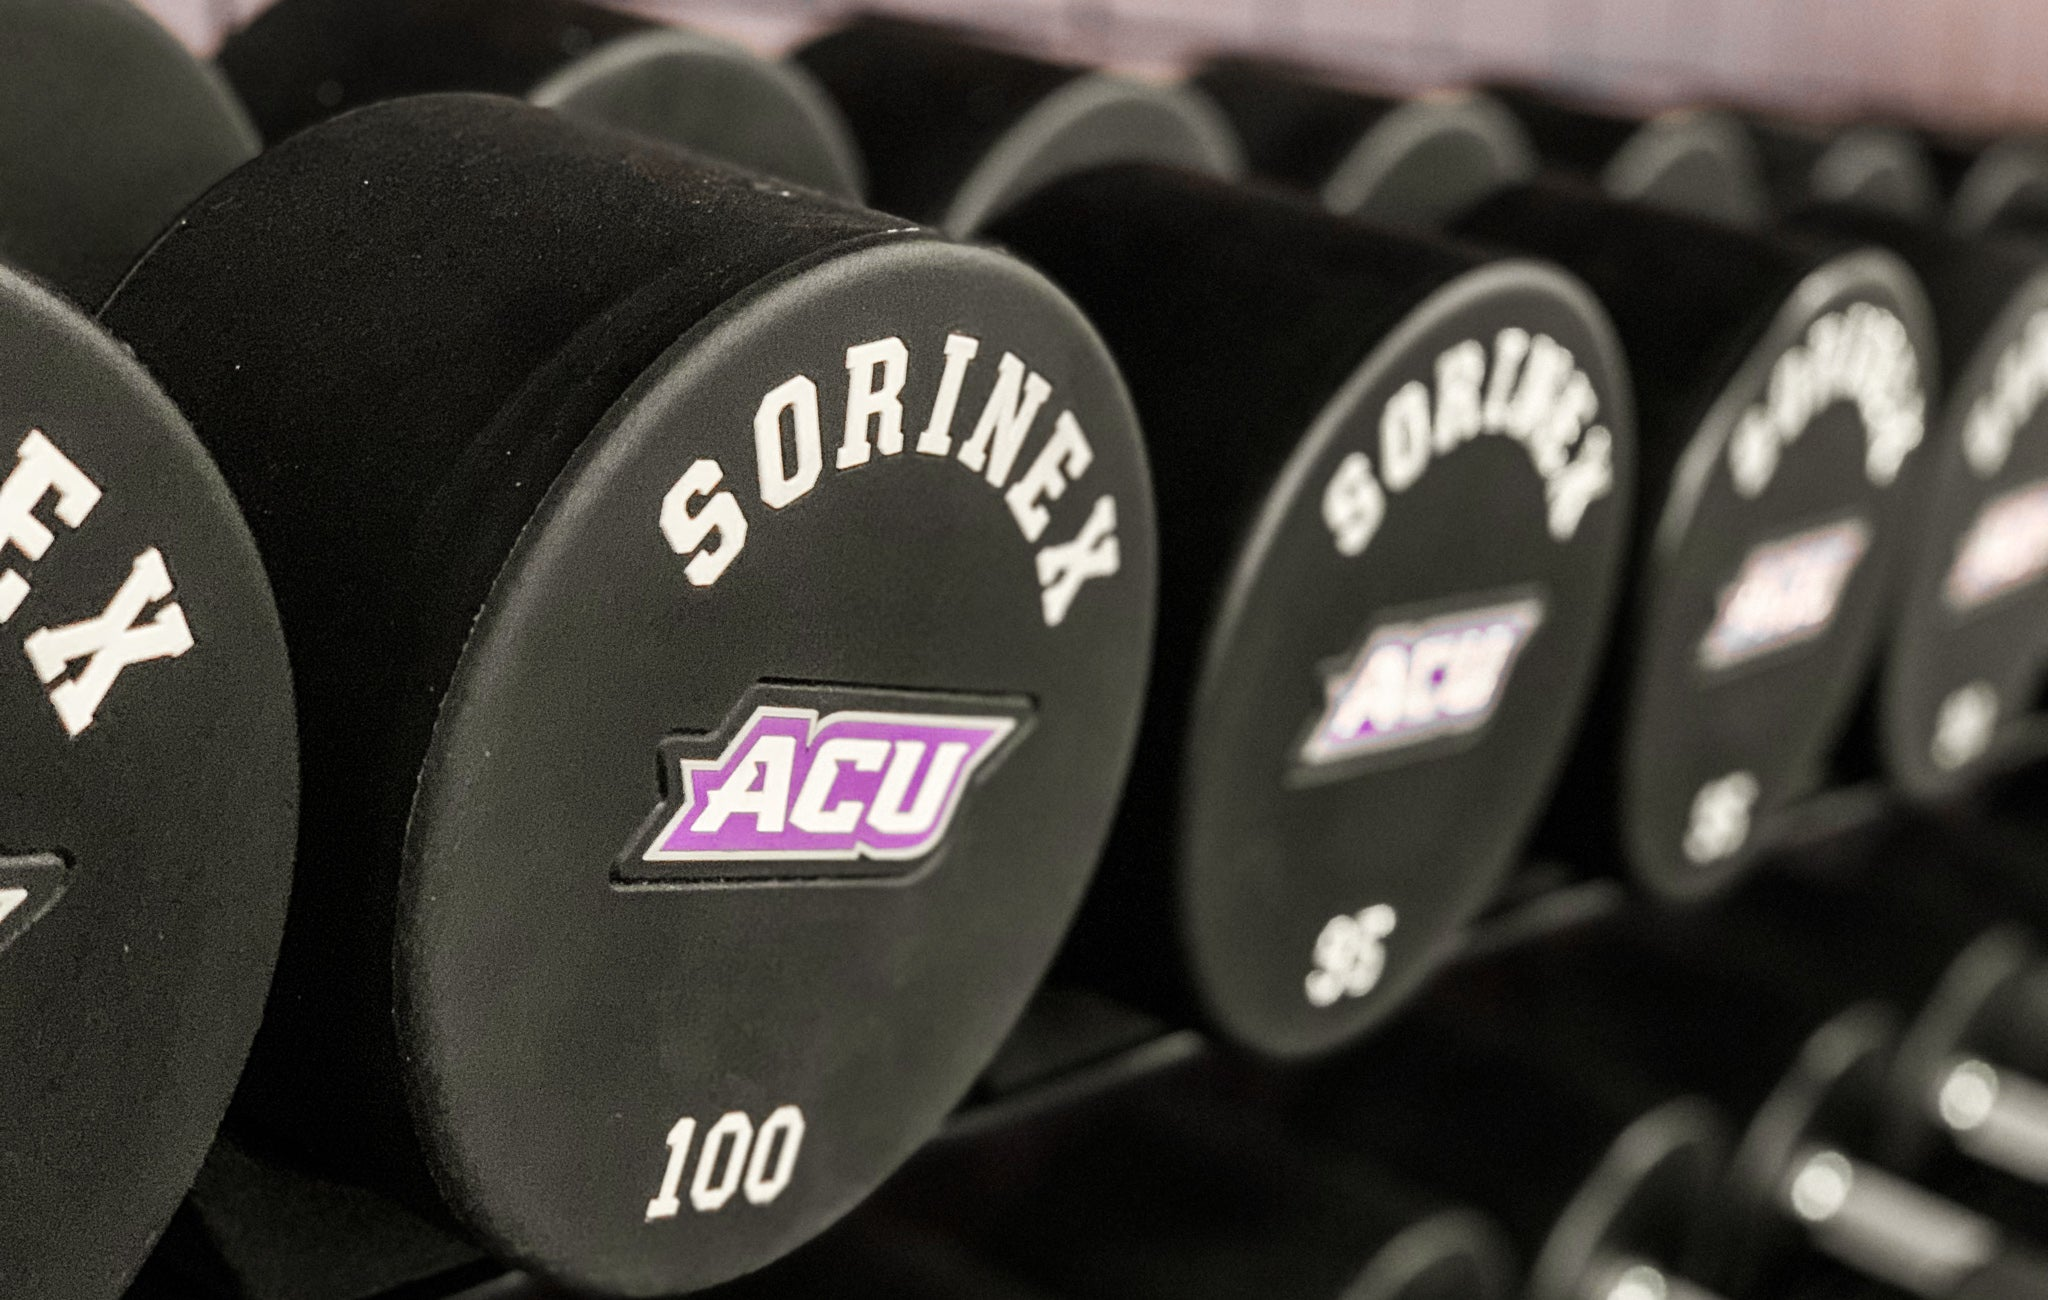 Abilene Christian University Sorinex Room